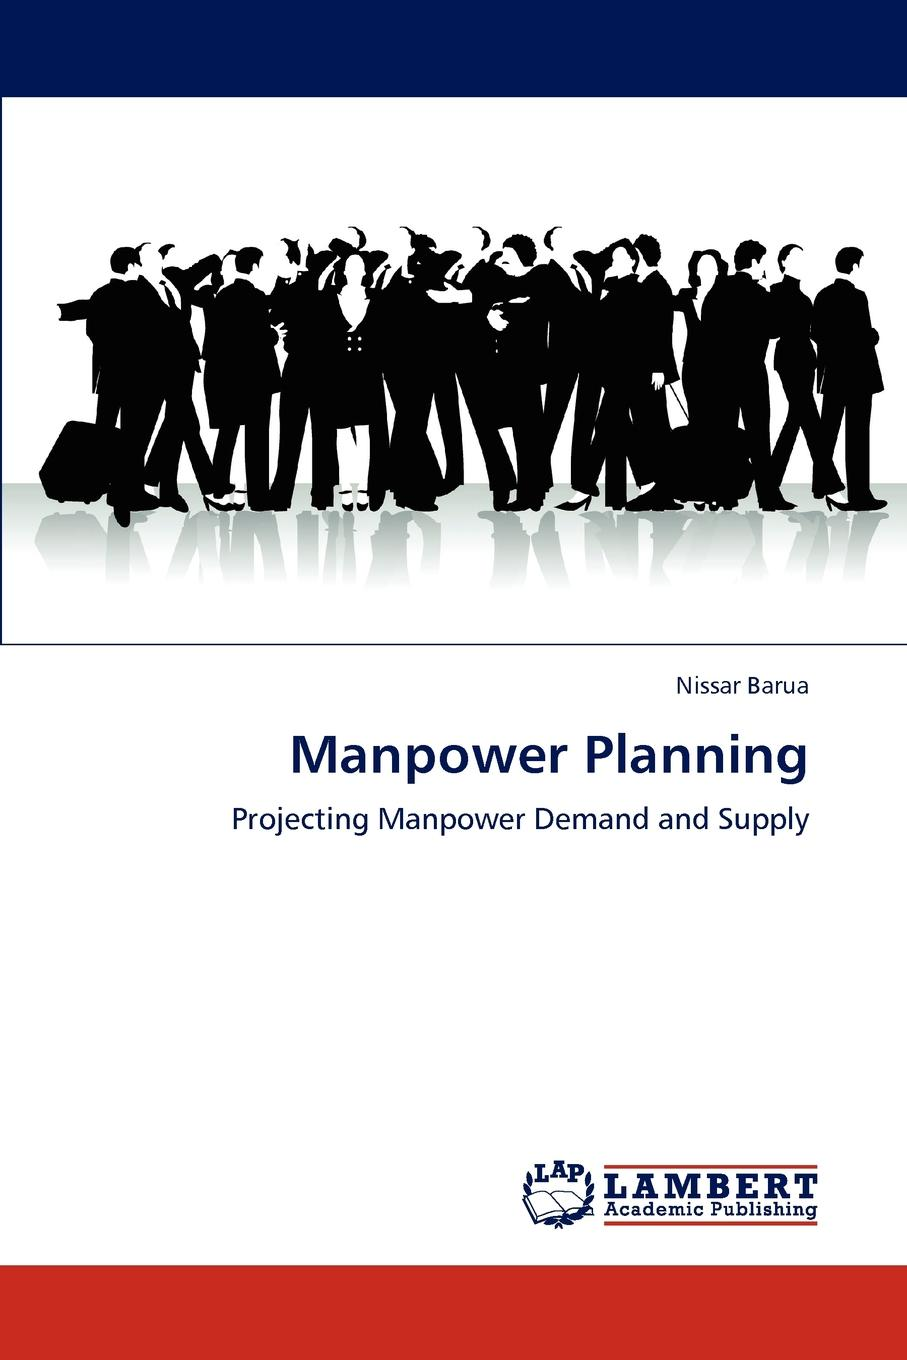 Nissar Barua Manpower Planning rd robinson high–level manpower in economical development – the turkish case